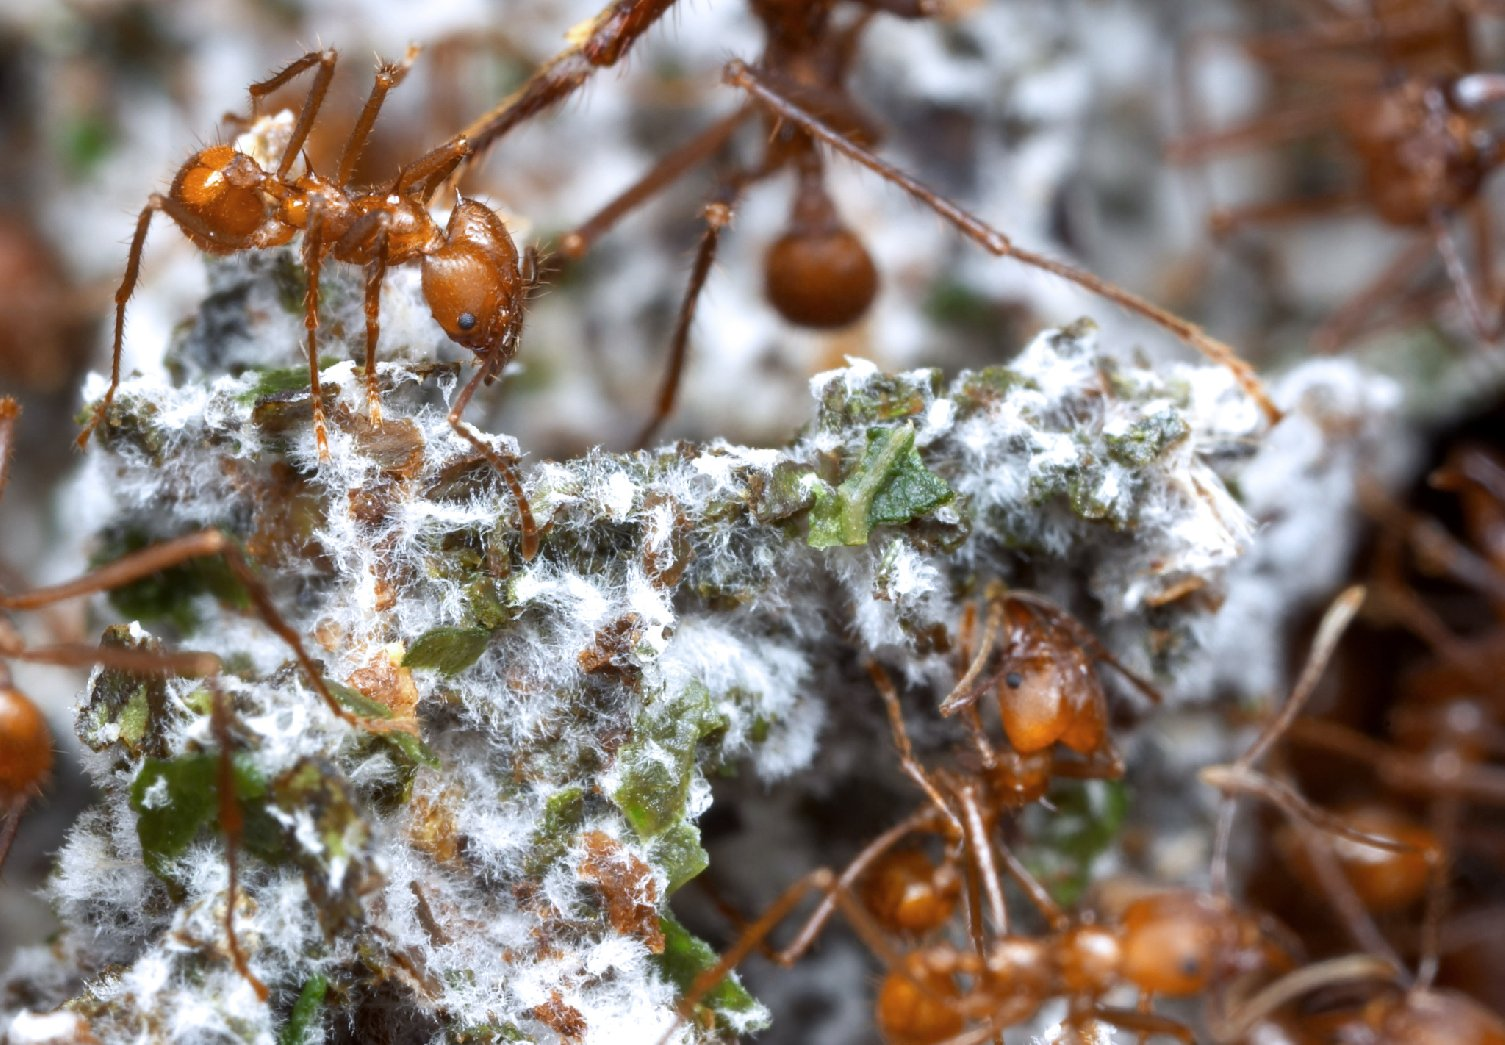 Leafcutter ants, native to Central and South America, can't digest the leaves they rely on for food, so they cultivate these gardens of fungi and bacteria to break down plant matter for them.